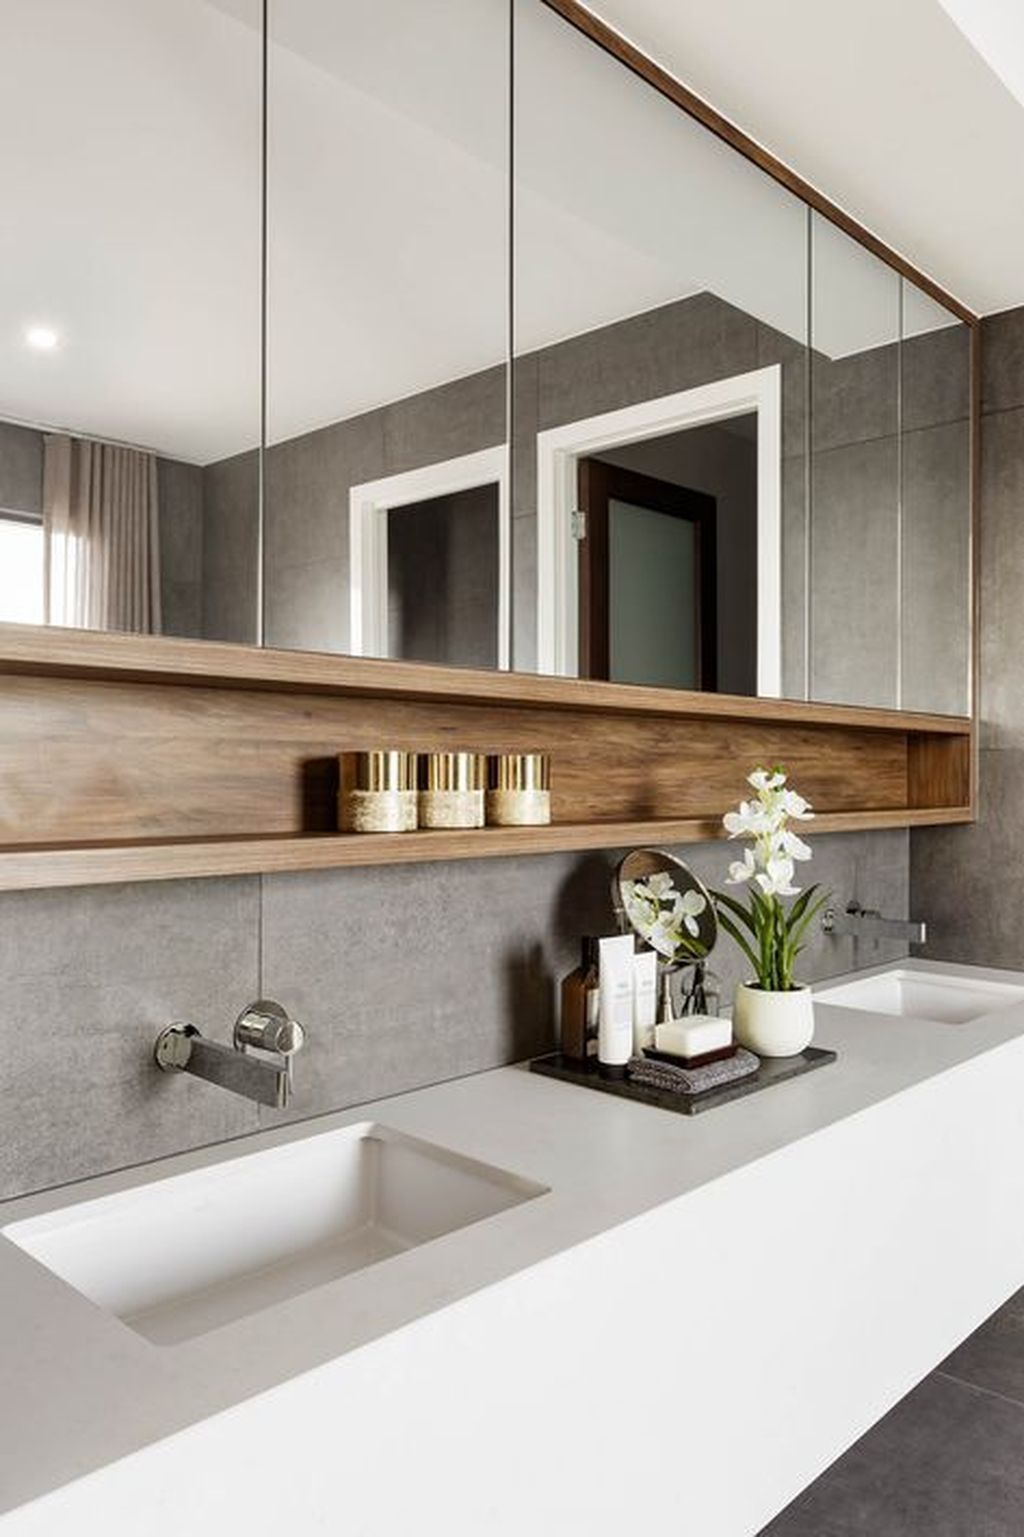 Simple Bathroom Design Ideas Every Bathroom Remodel Starts With A Style Suggestion From Full Ma In 2020 Contemporary Bathroom Designs Bathroom Design Modern Bathroom